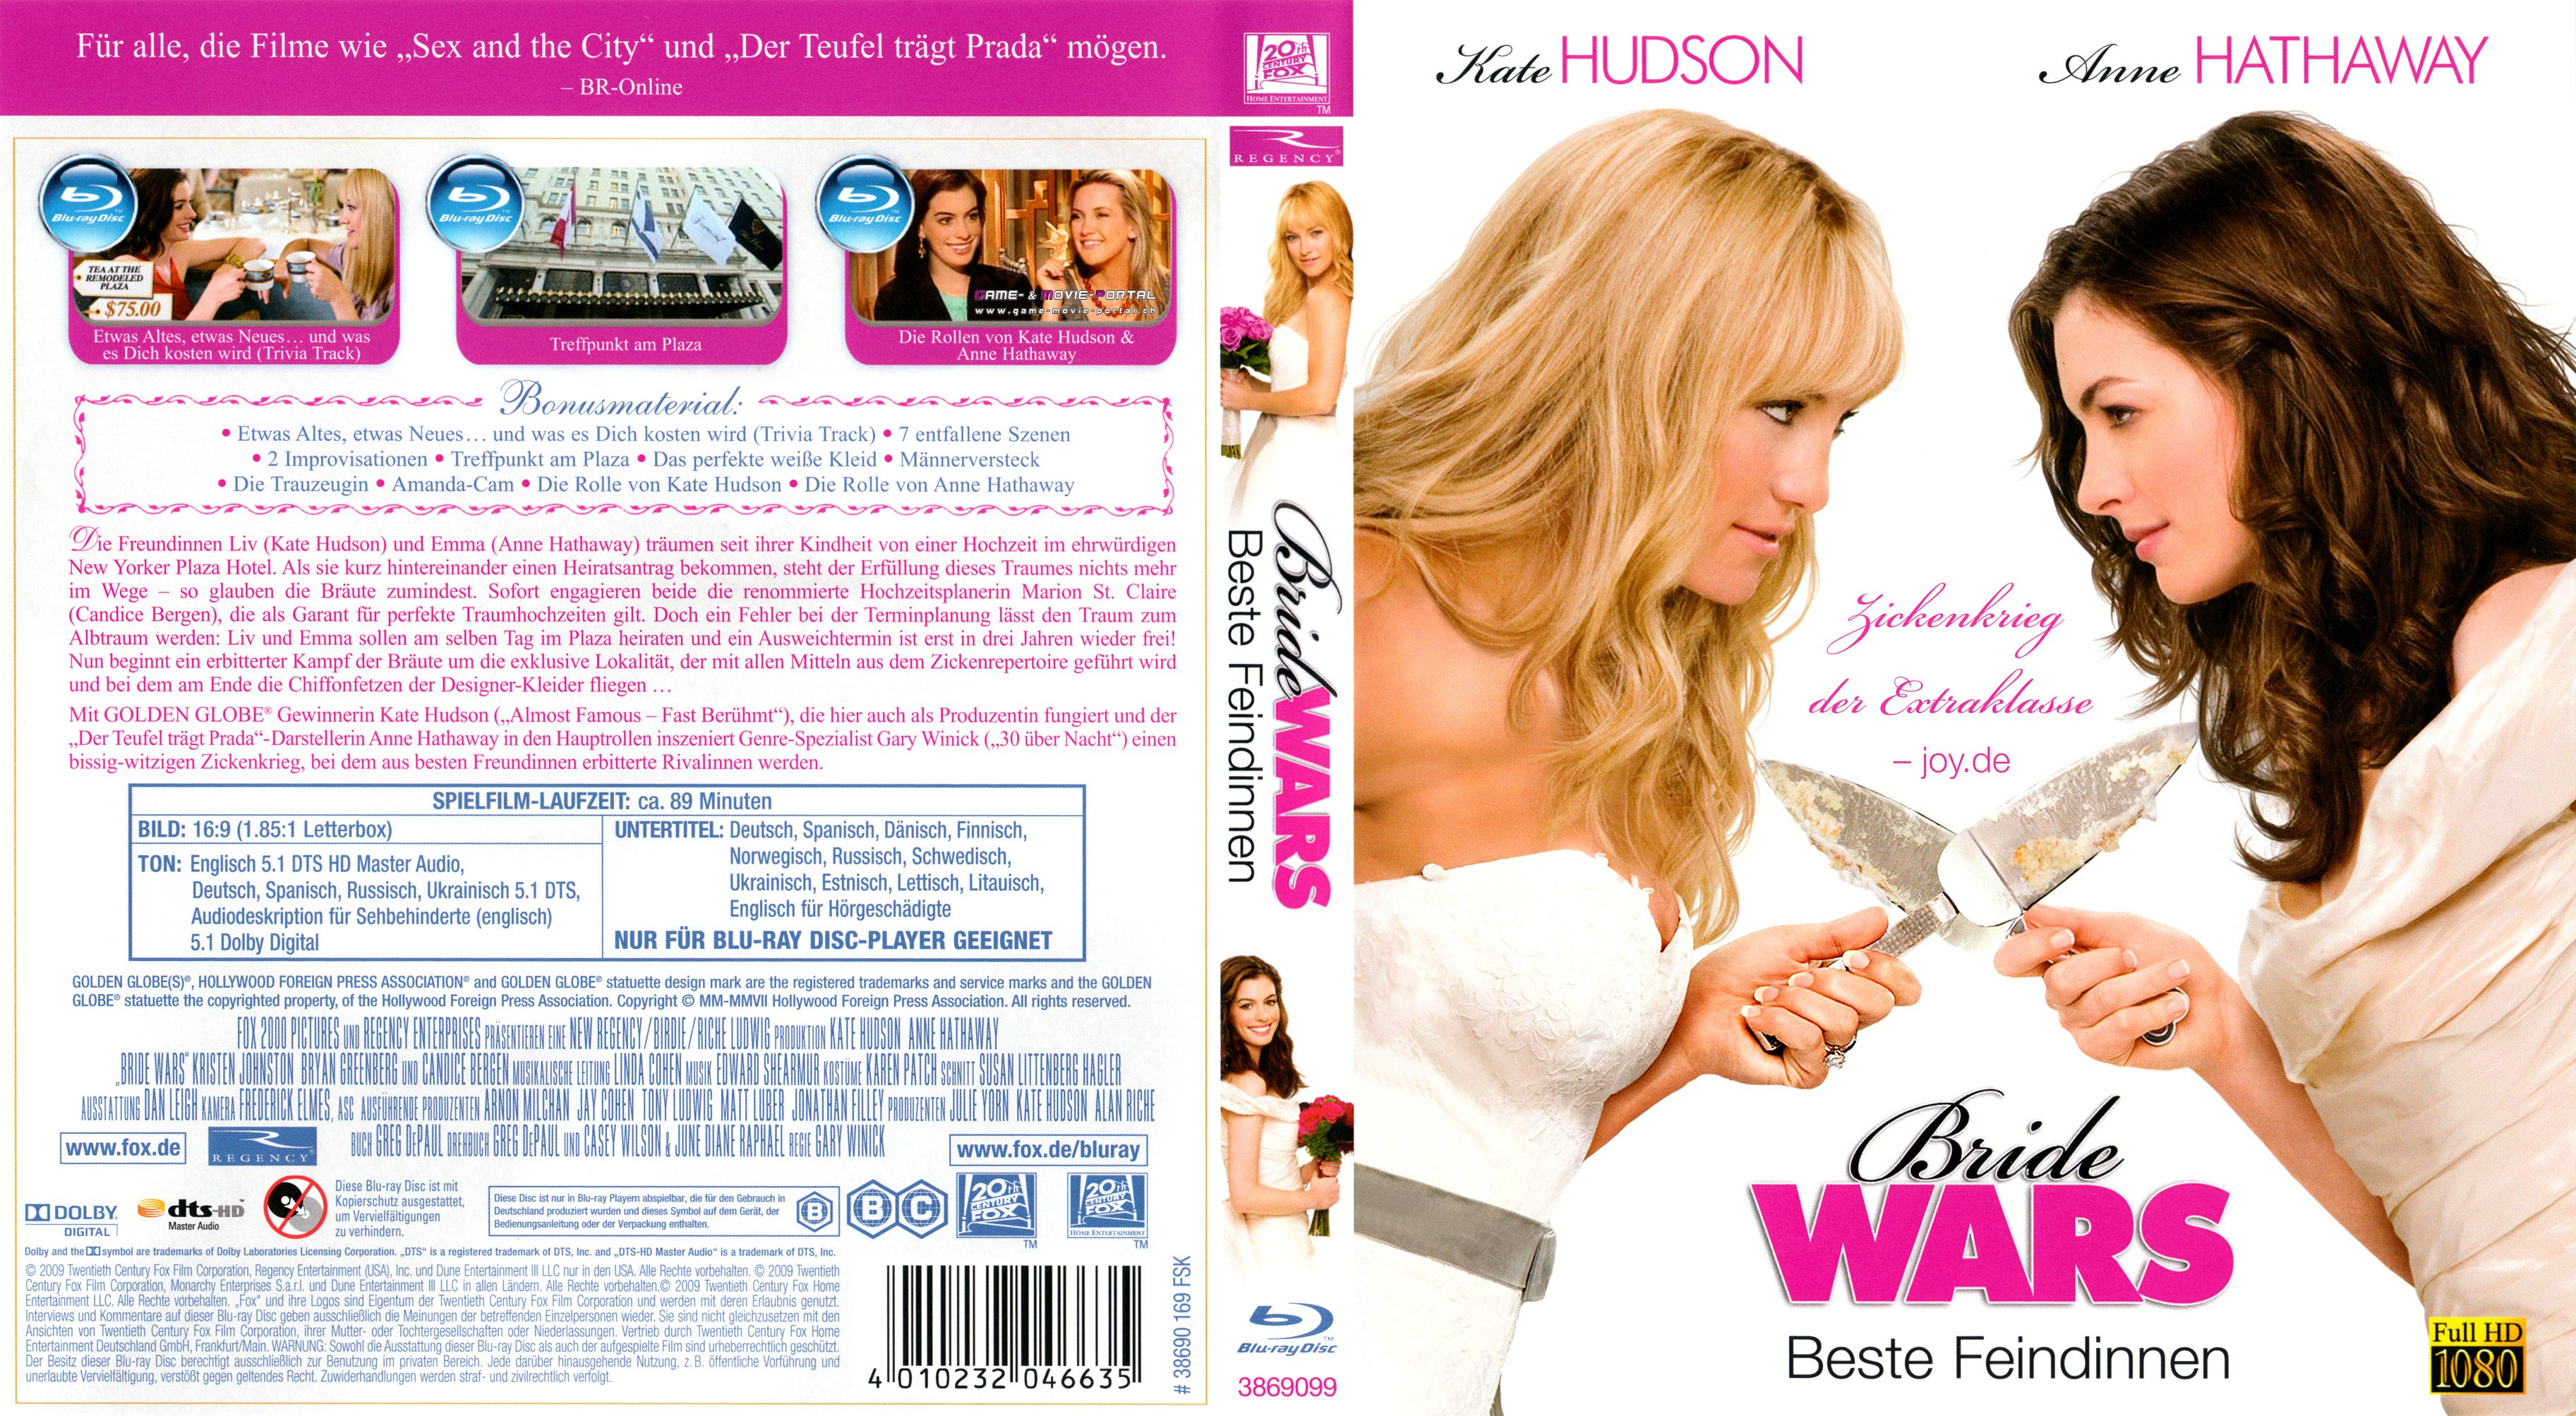 bride wars beste feindinnen blu ray cover german german dvd covers. Black Bedroom Furniture Sets. Home Design Ideas